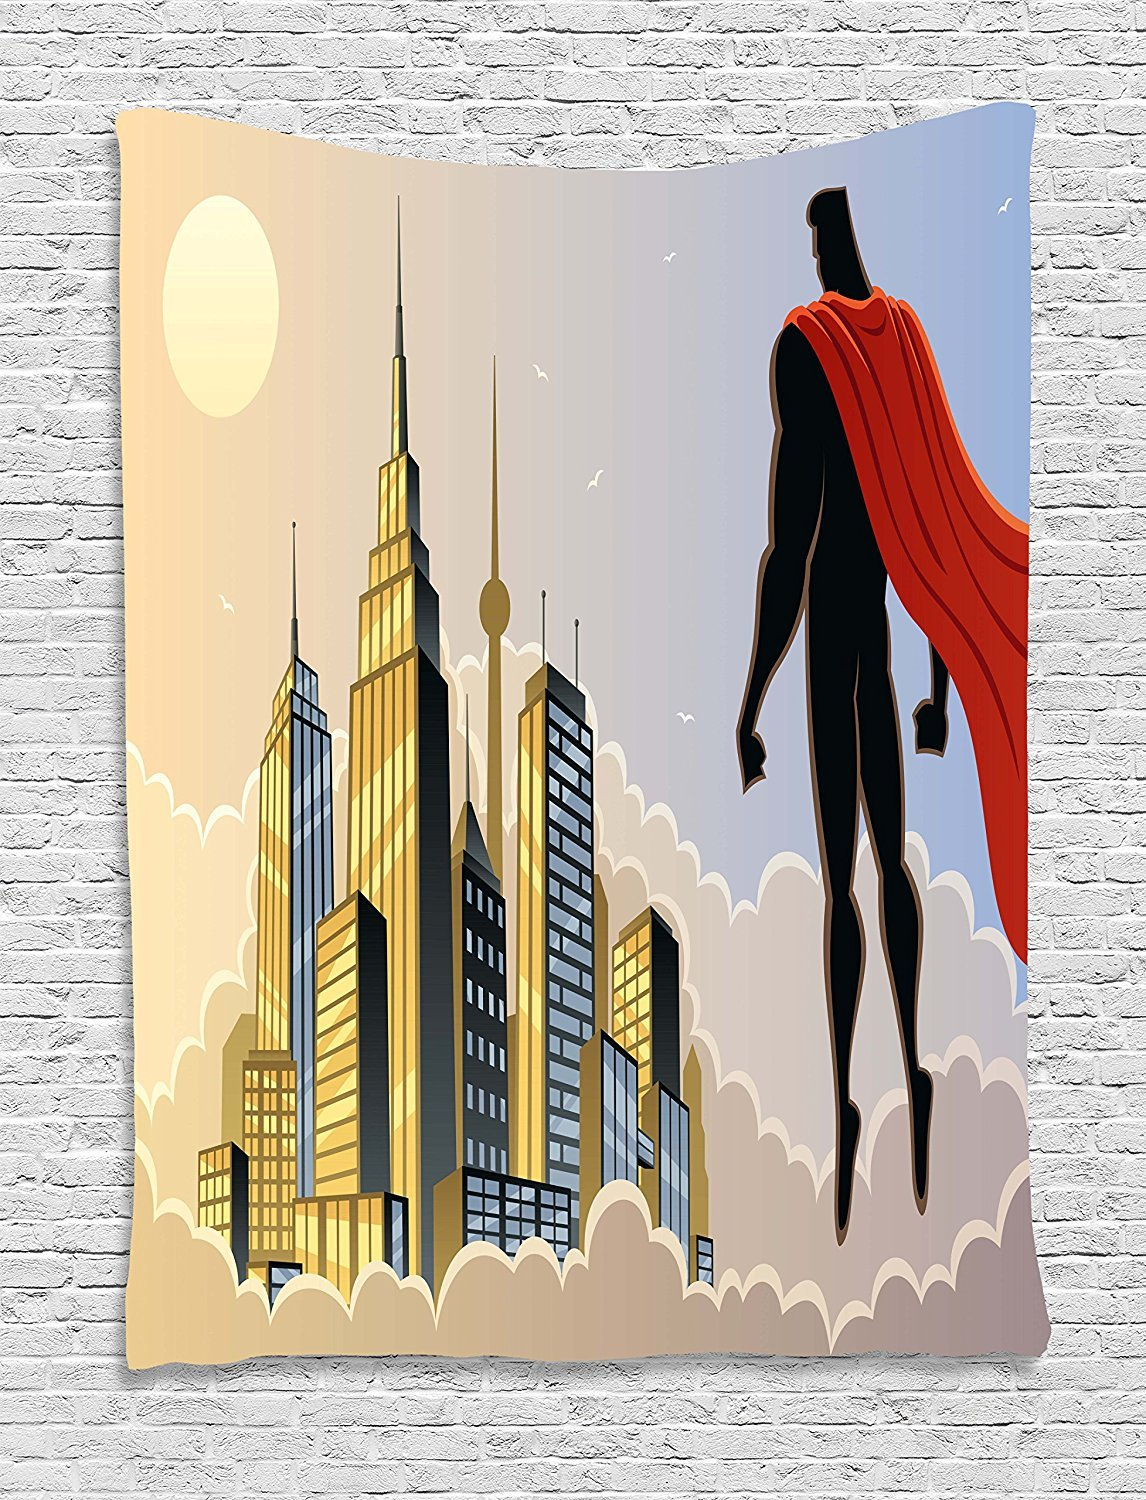 asddcdfdd Superhero Tapestry, Hero Watching the City on Clouds at Sunset Protector Fantasy Architecture Design, Wall Hanging for Bedroom Living Room Dorm, 60 W X 80 L Inches, Multicolor